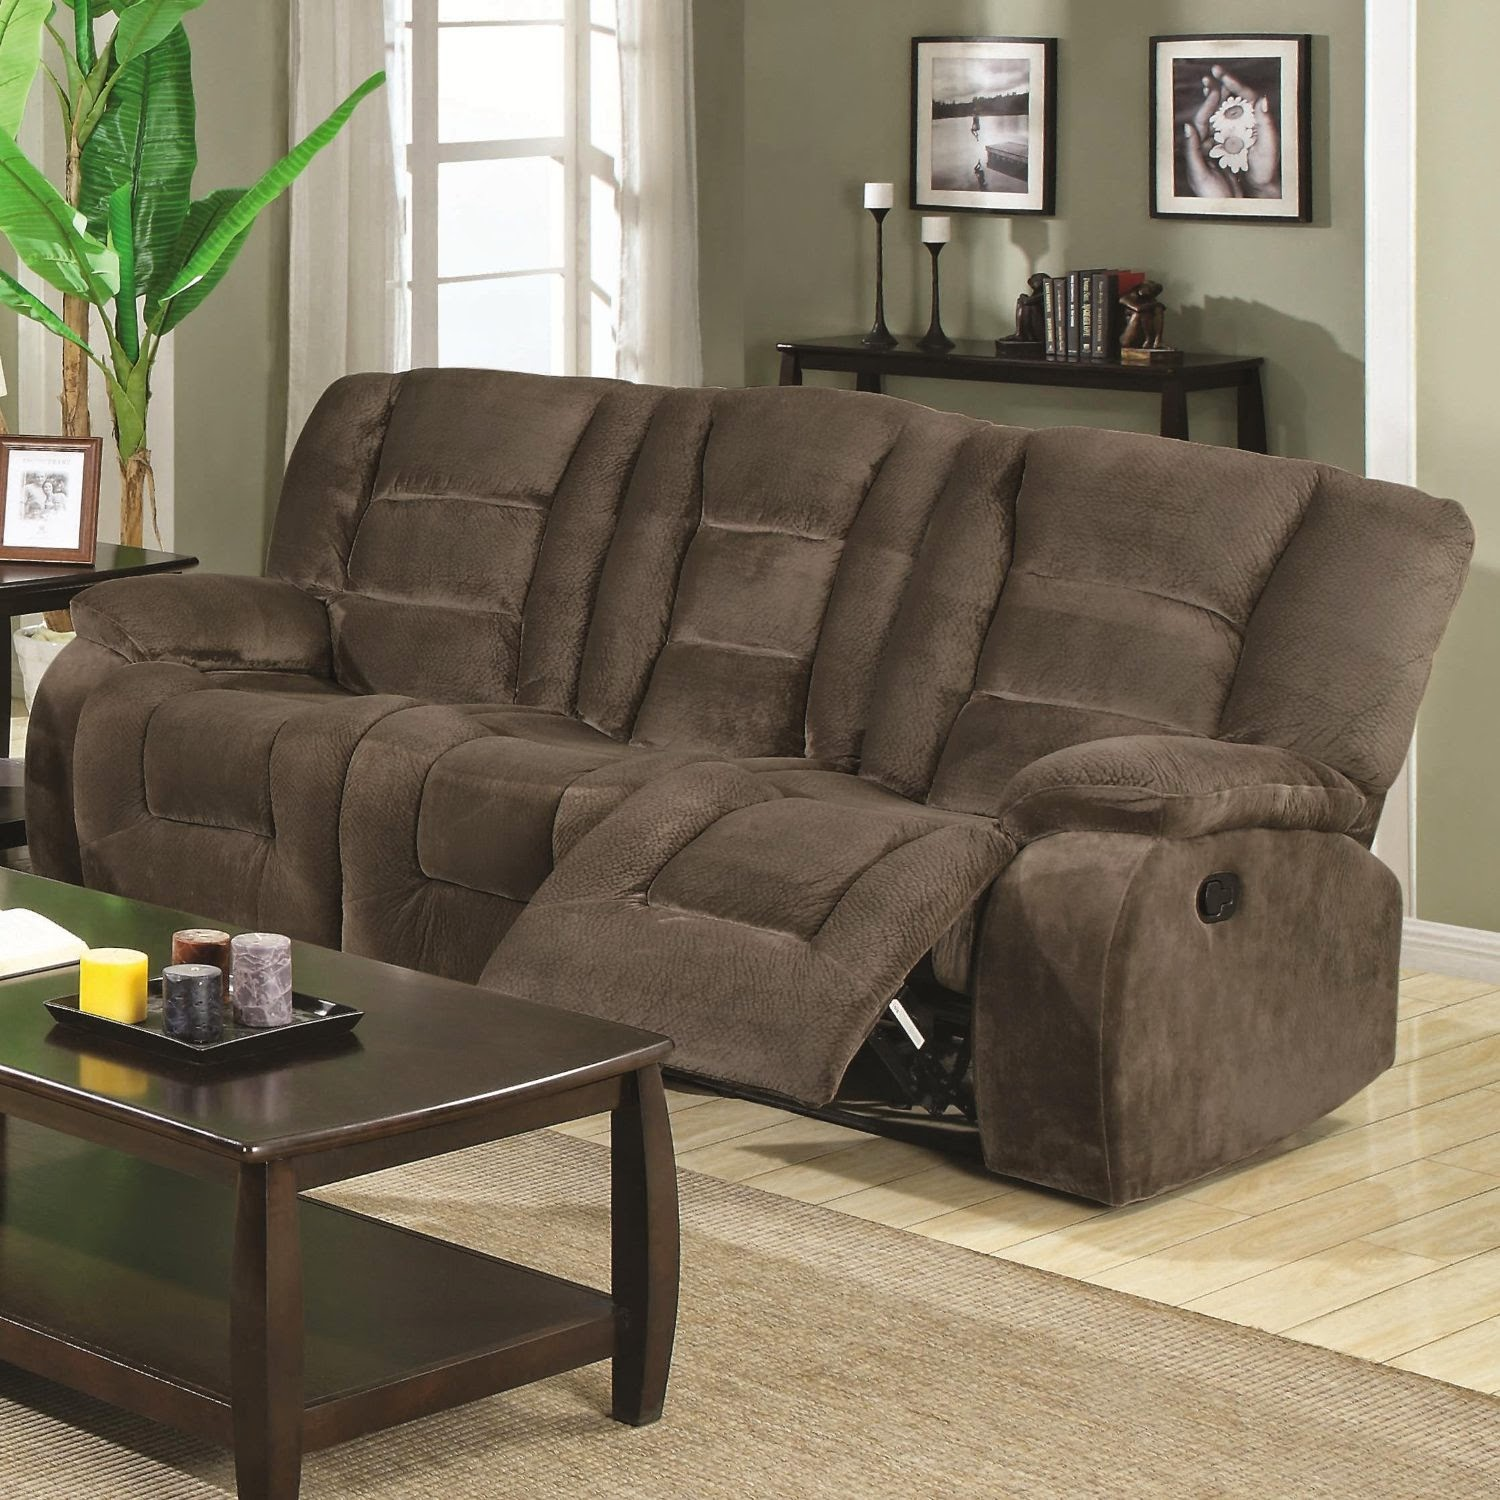 recliner sofa set 3 2 1 city furniture leather cheap reclining sofas sale fabric